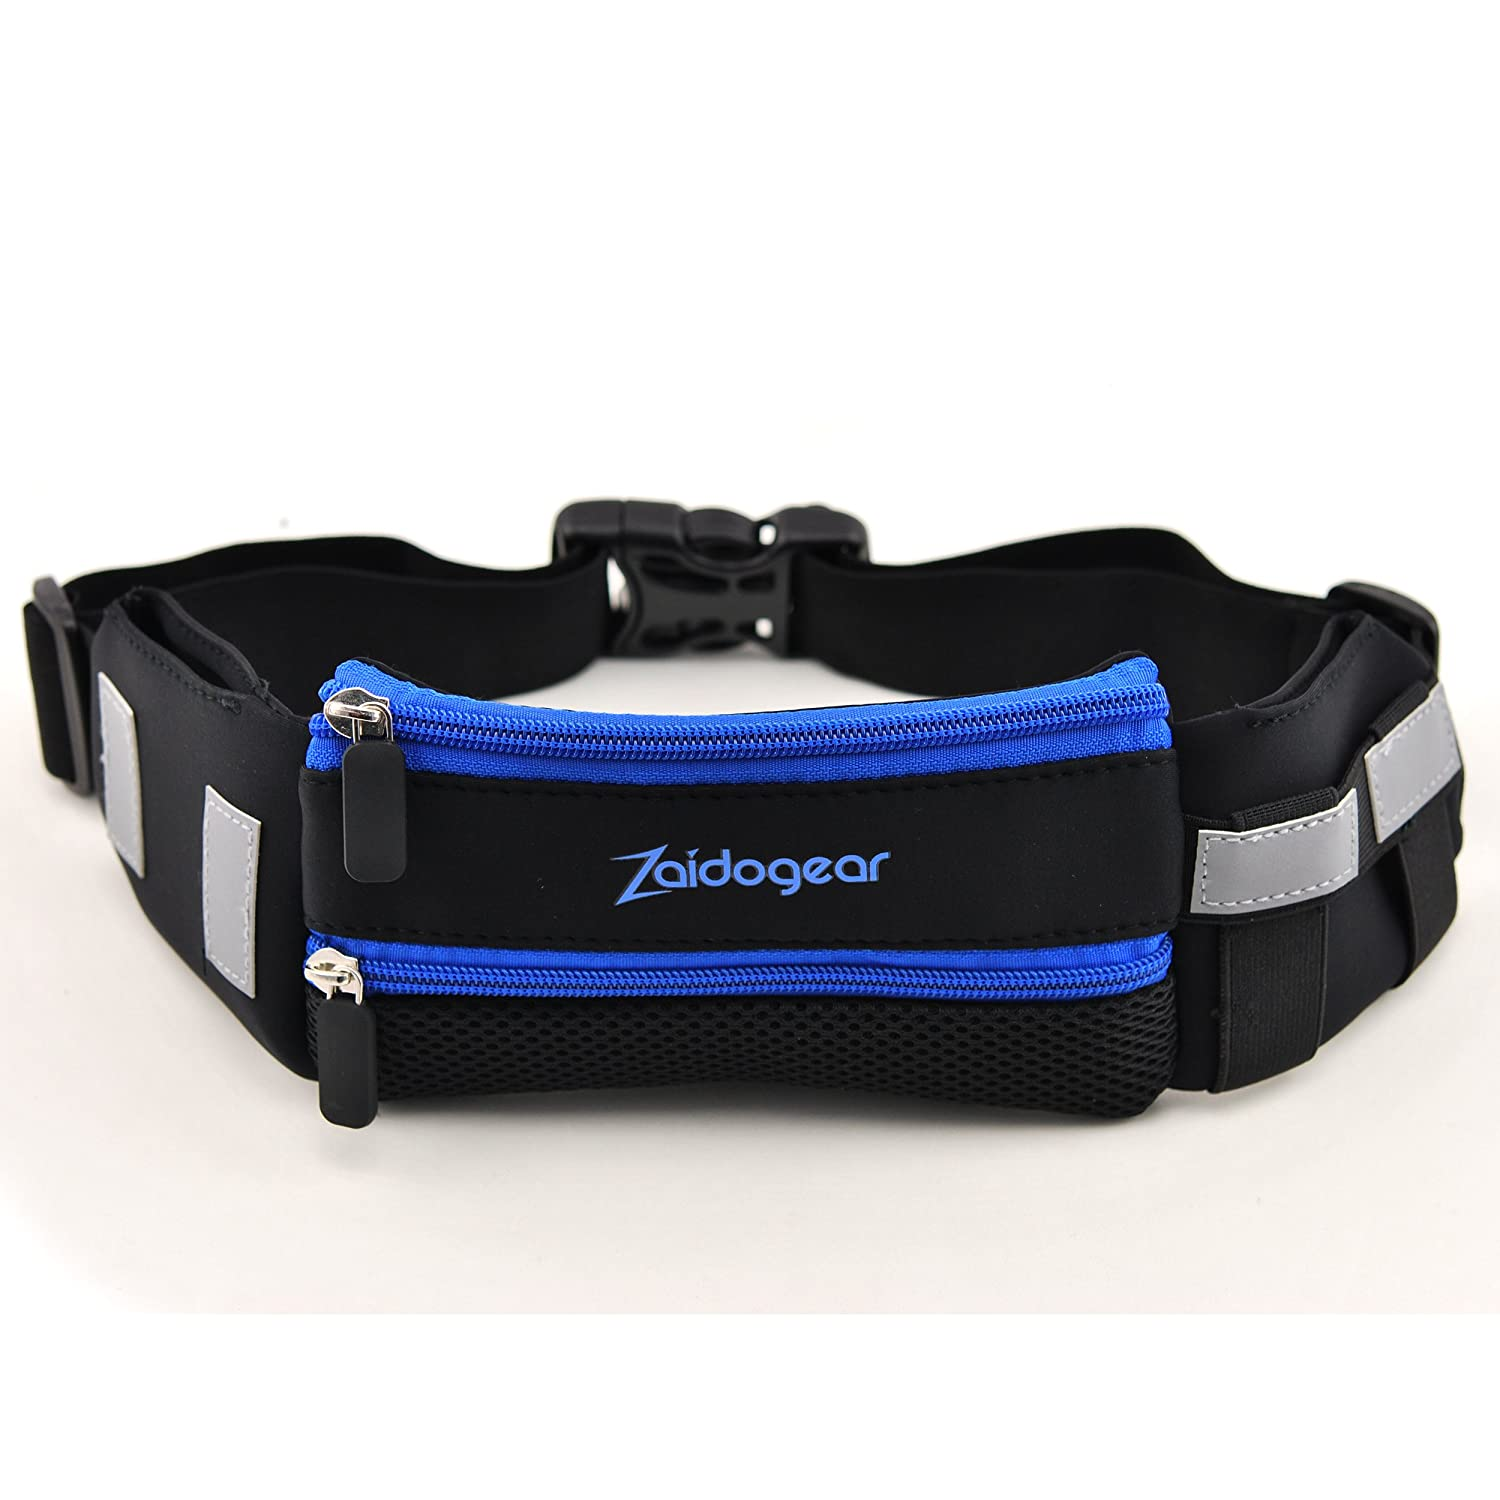 Zaidogear Running Belt for Men and Women, Water Resistant Pocket to Hold Phone, Keys and Credit Cards. One-Size Fits All.